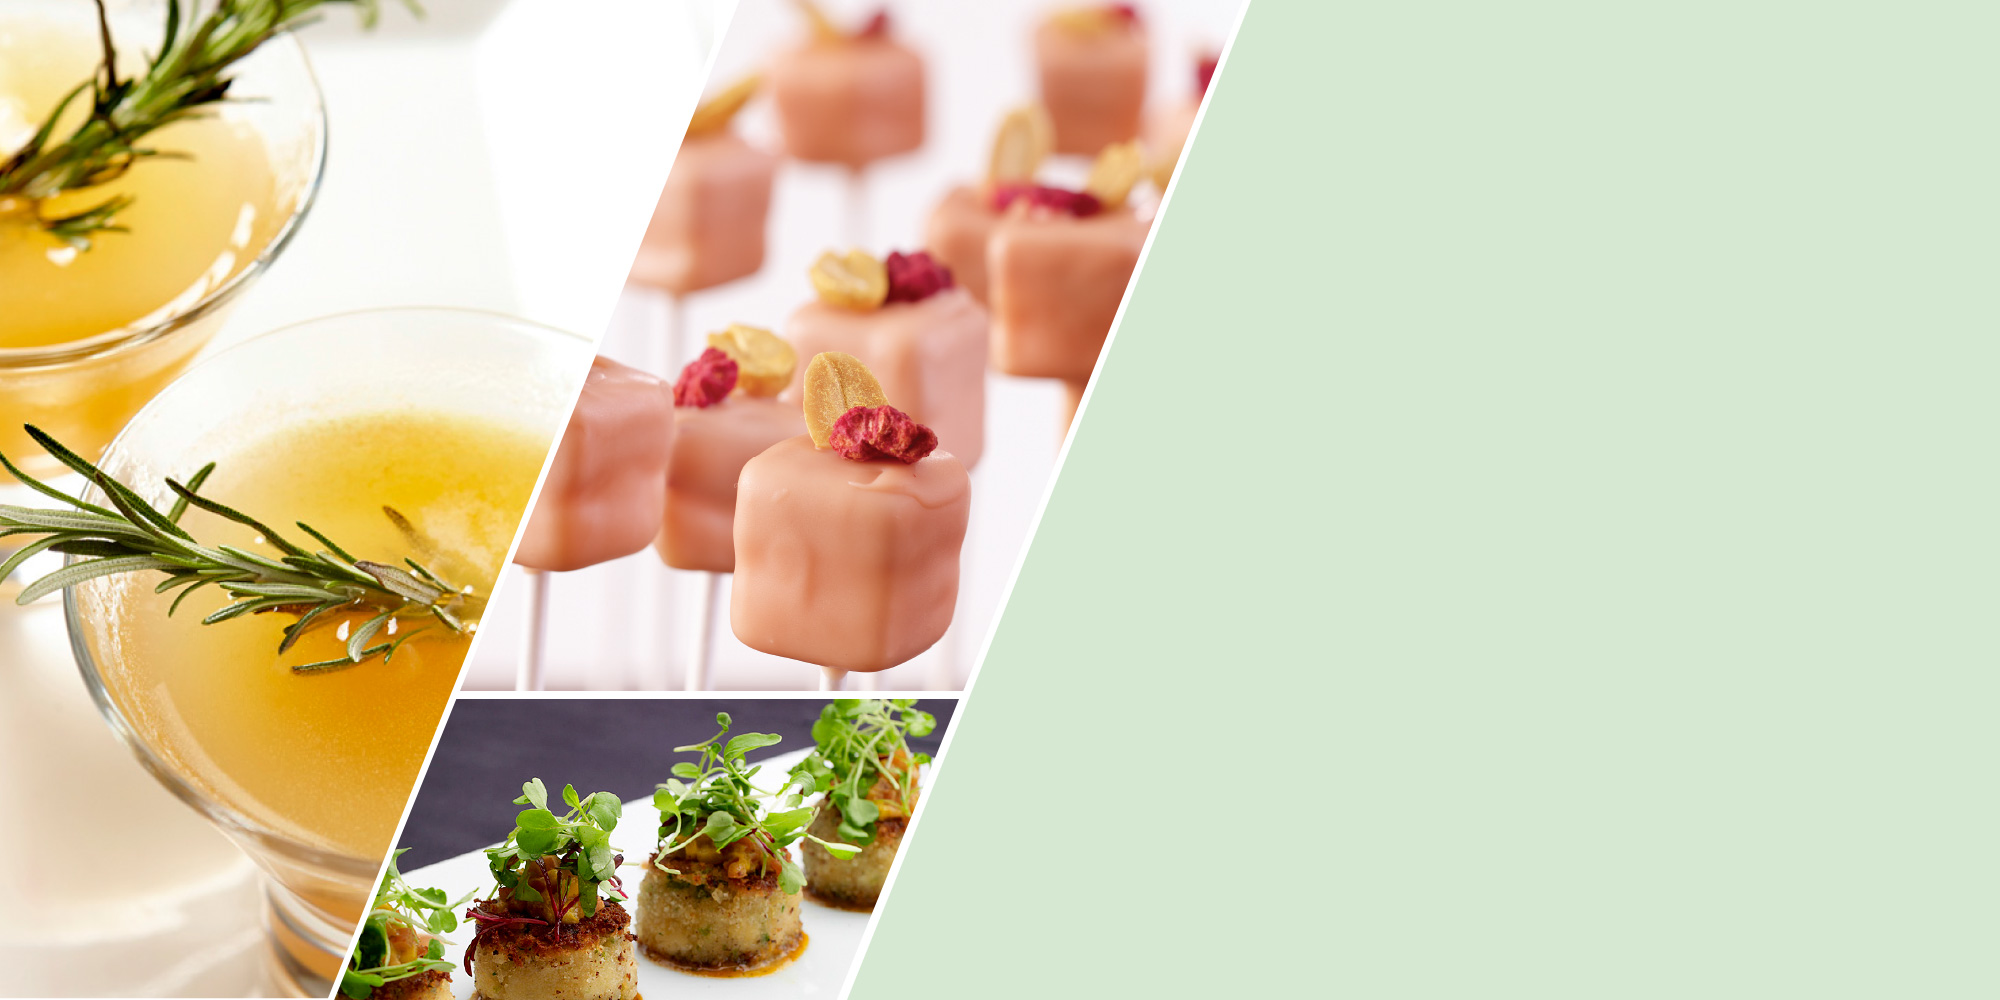 Catering by Wolfgang Puck